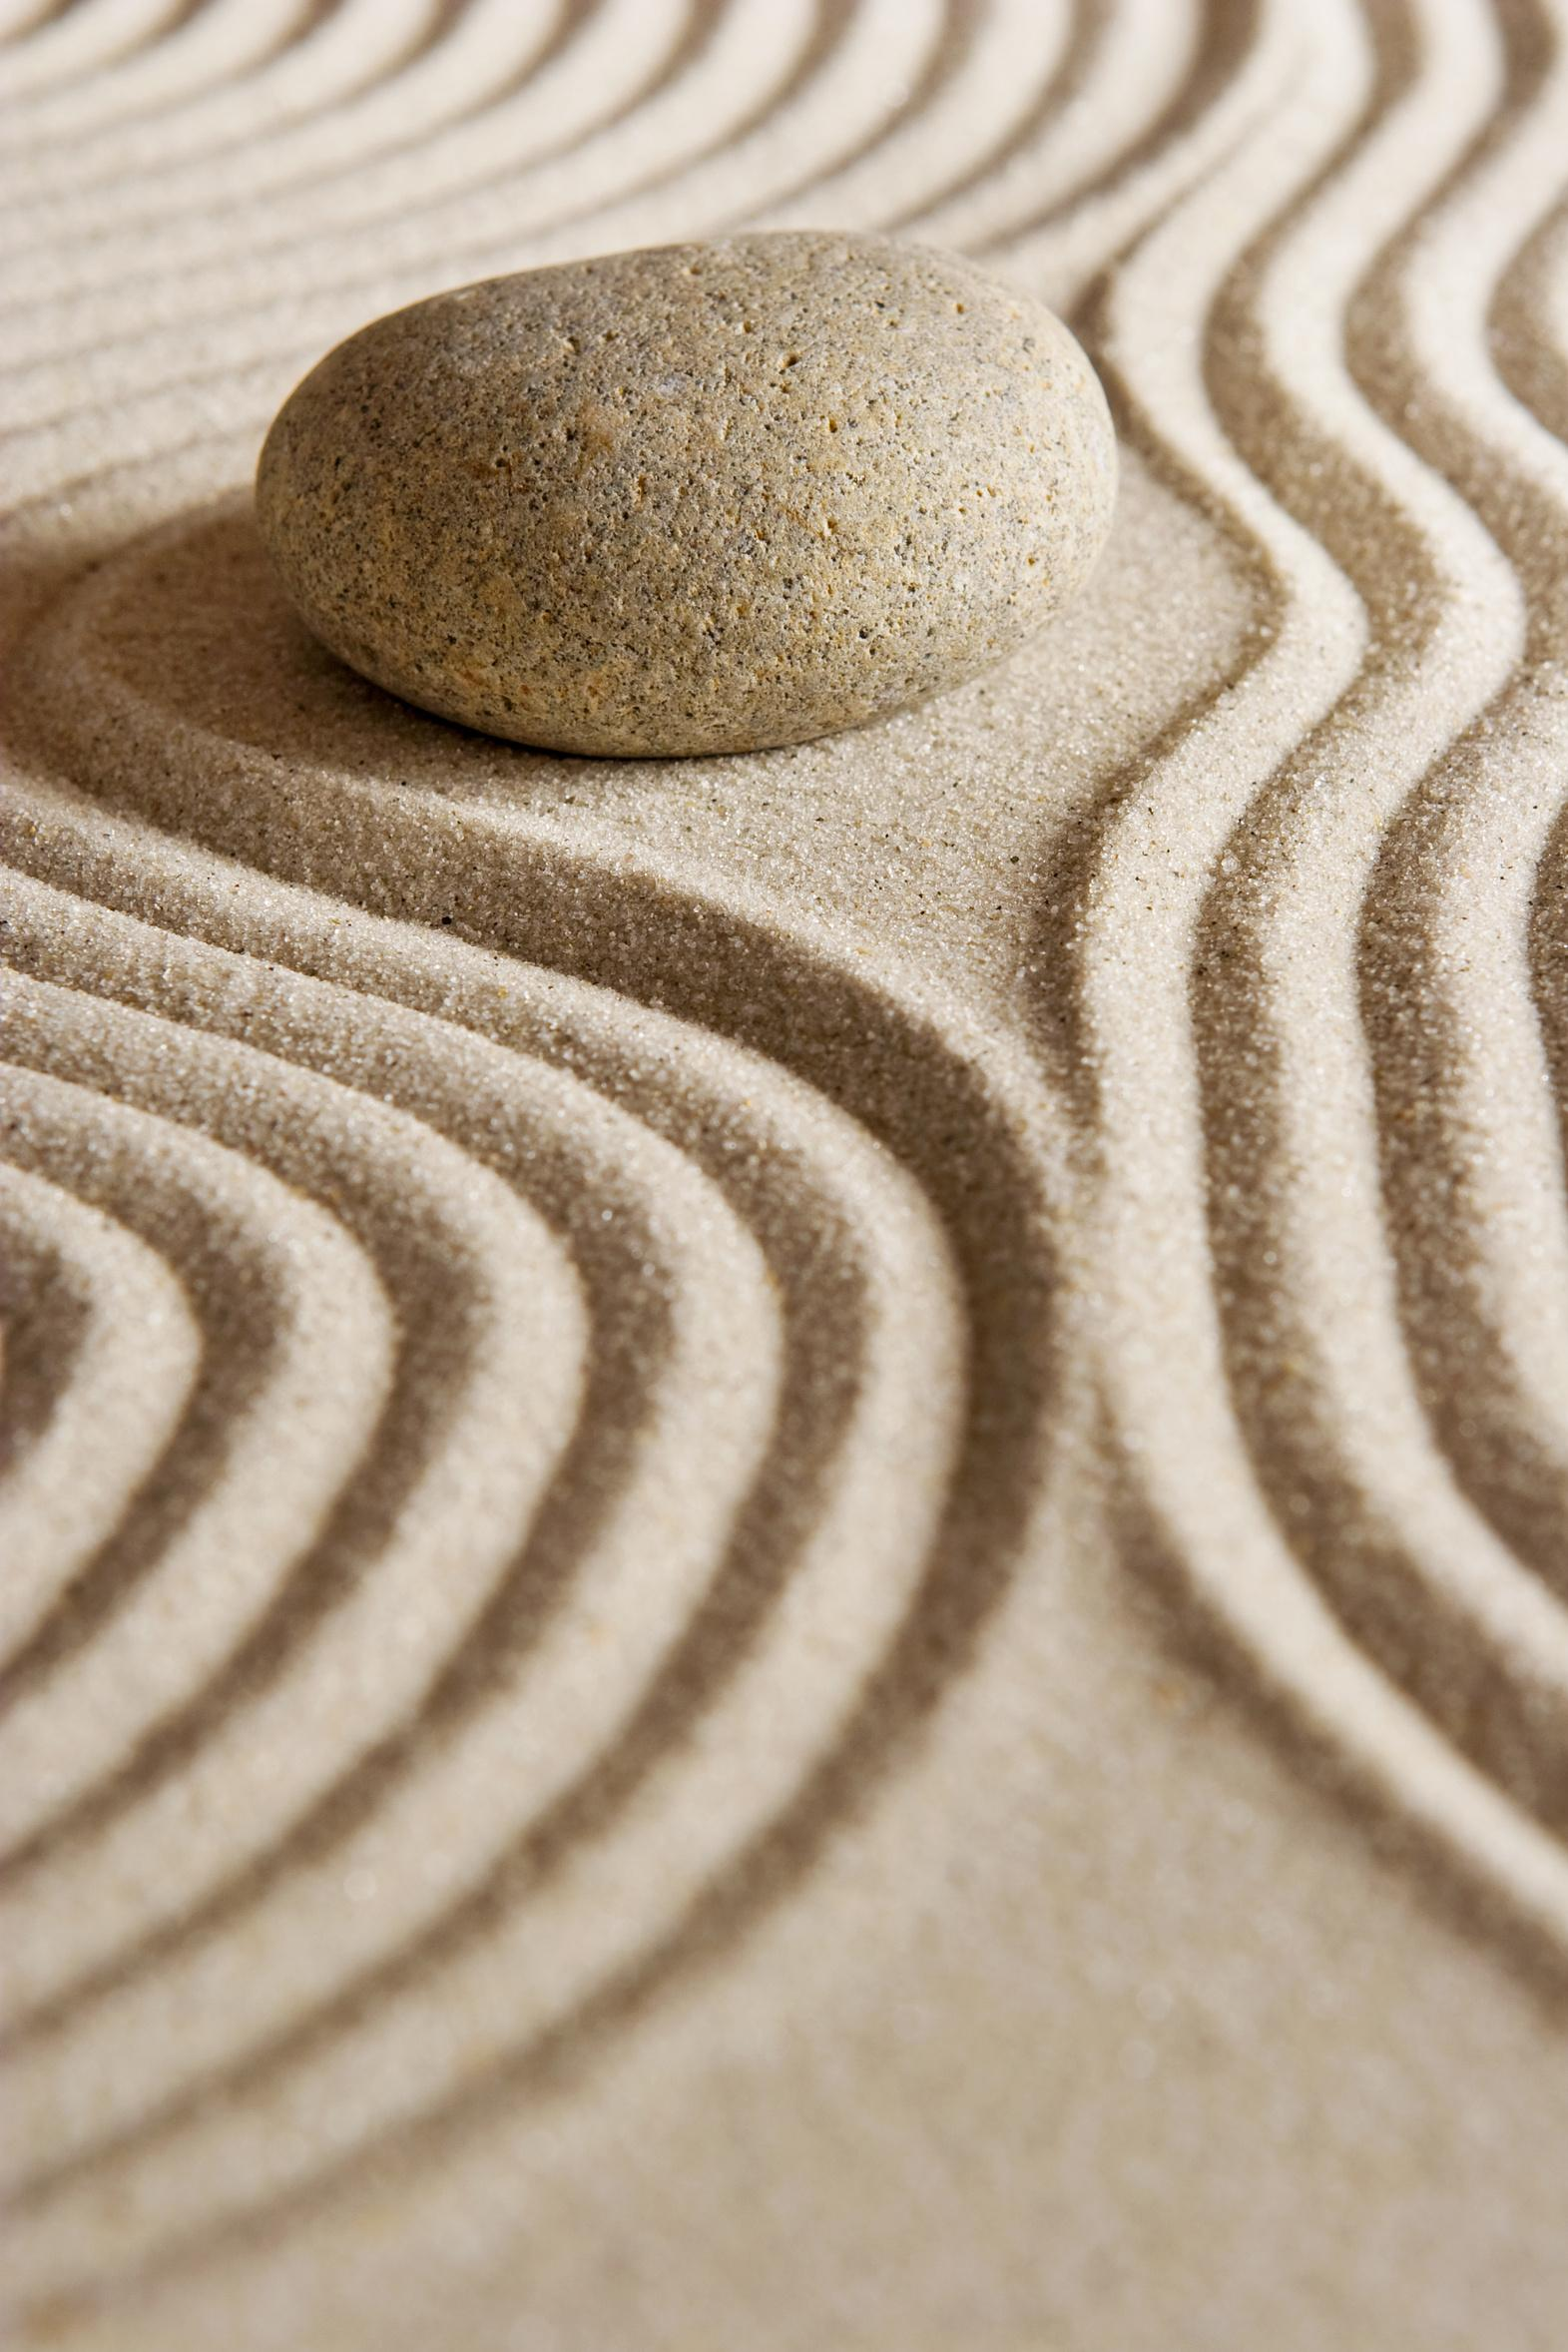 macro sand balance stone texture simplicity abstract meditation nature stability